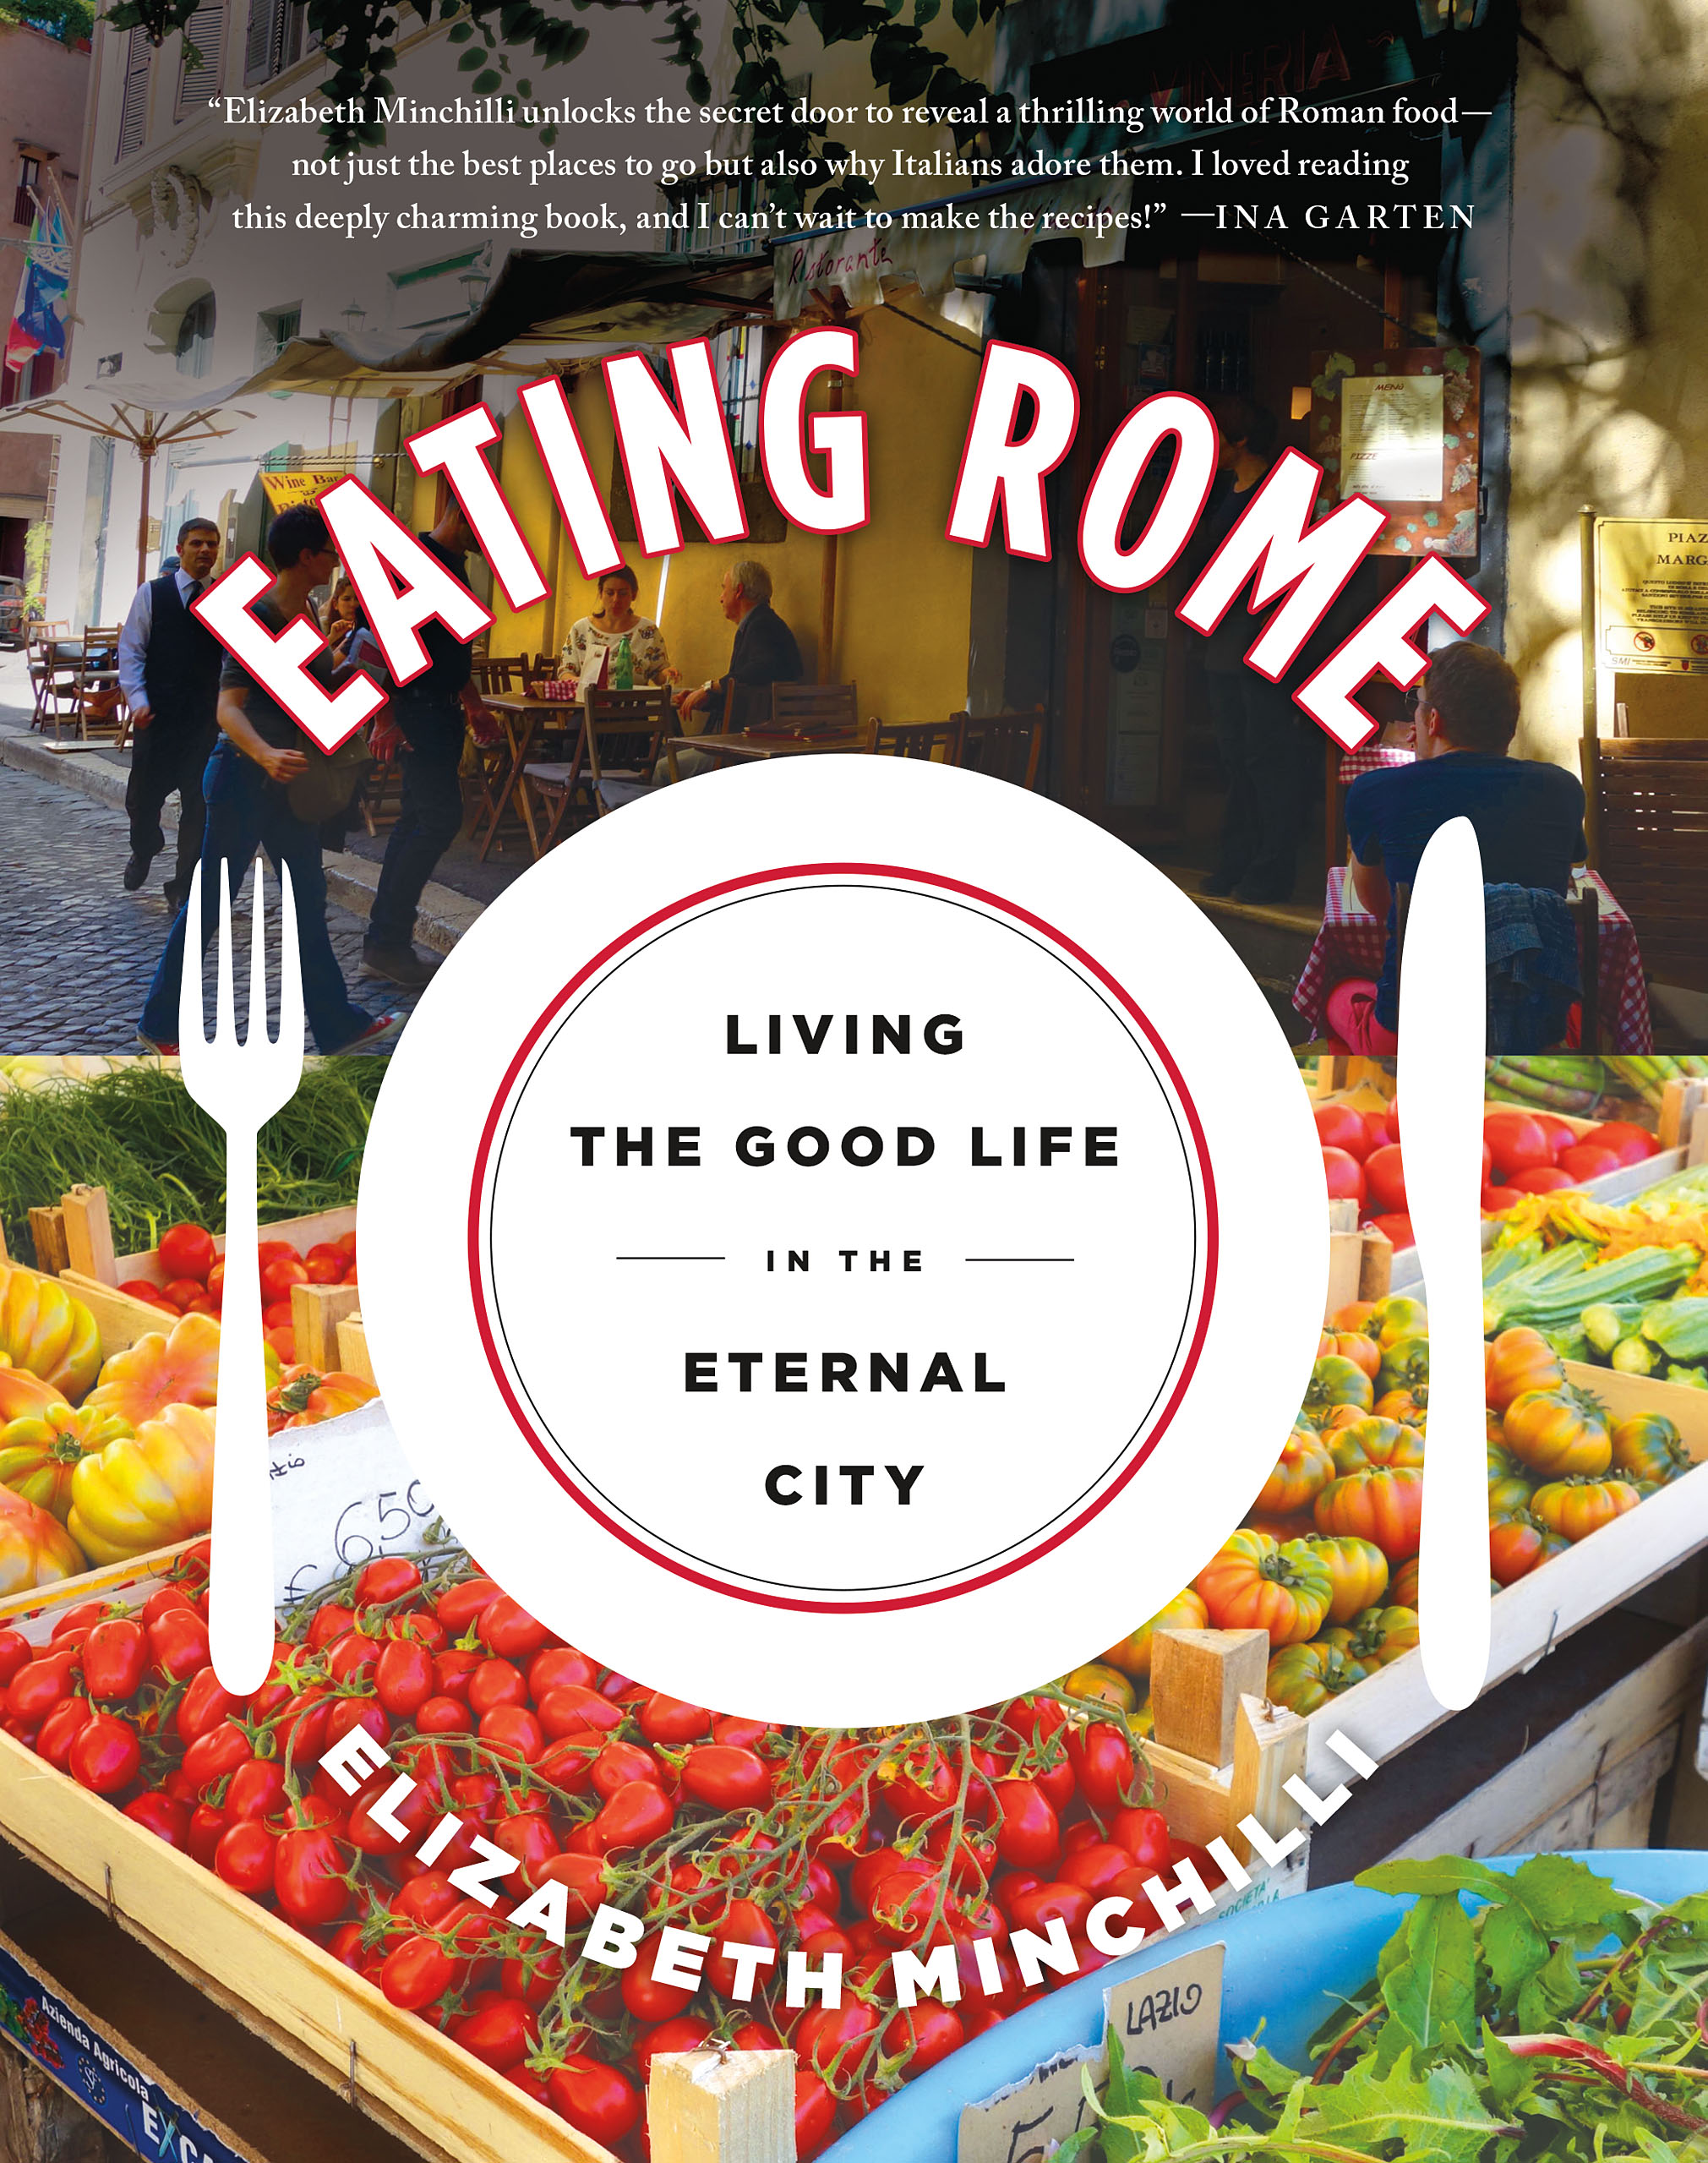 eating rome cookbook giveaway via dallasfoodnerd.com